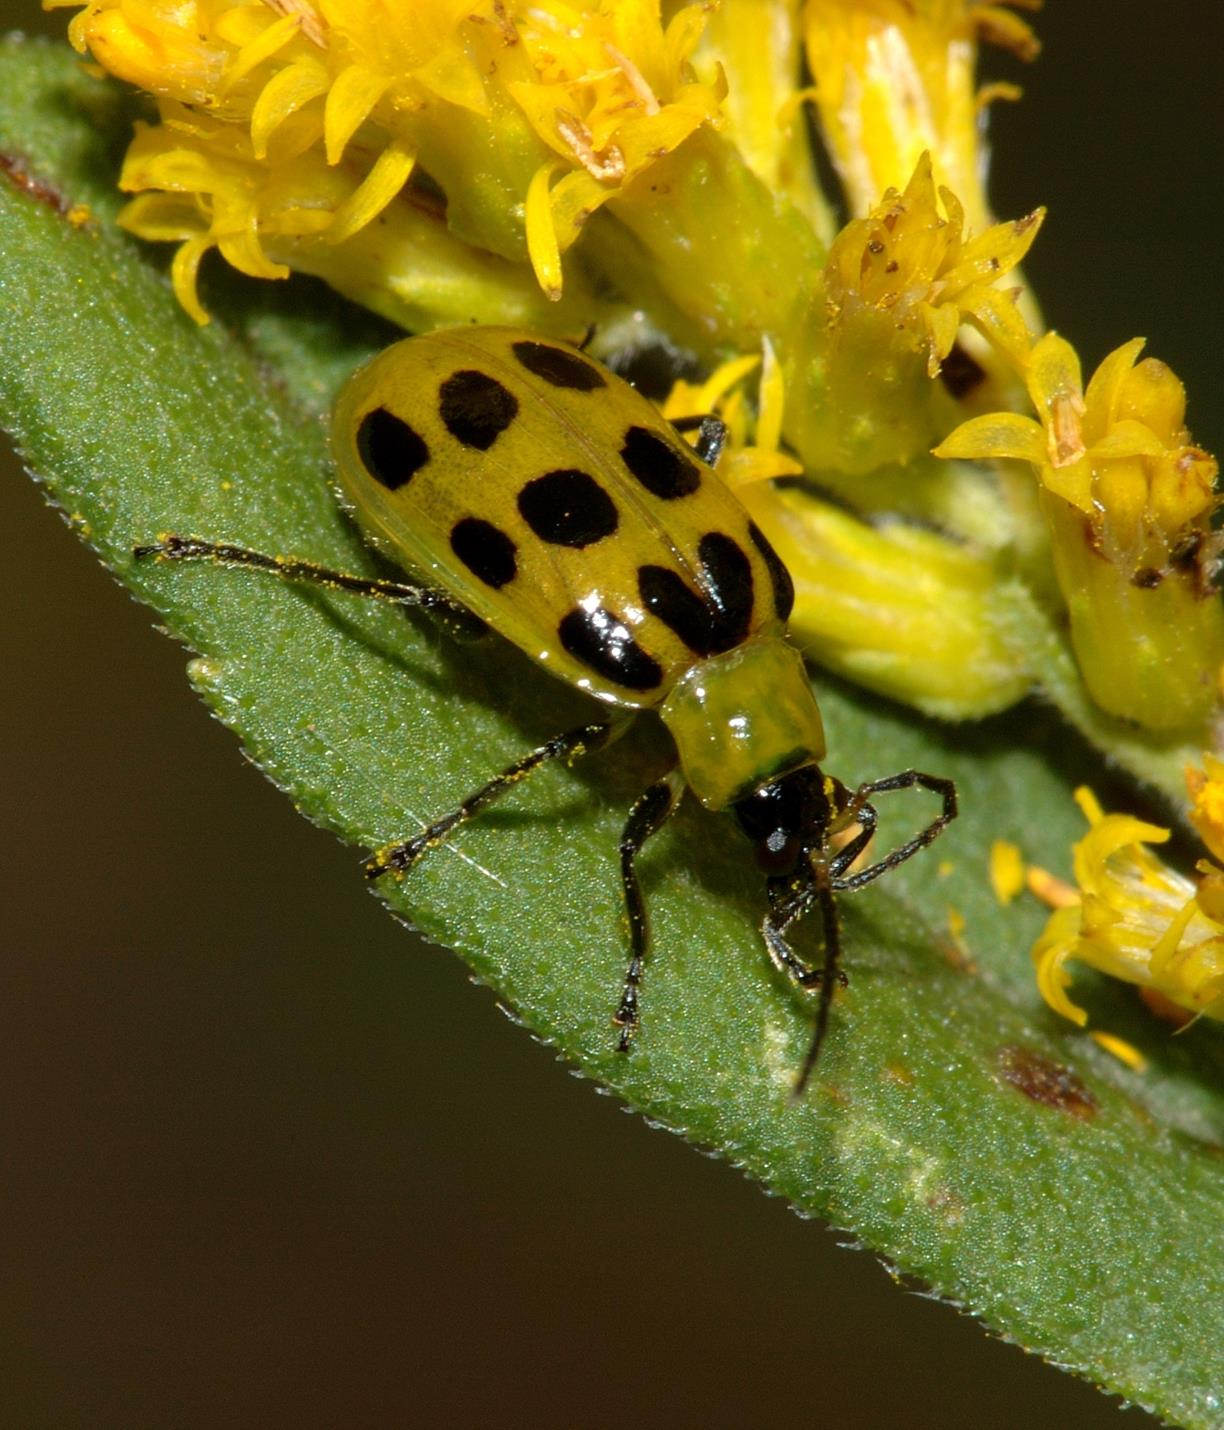 Spotted_cucumber_beetle.jpg